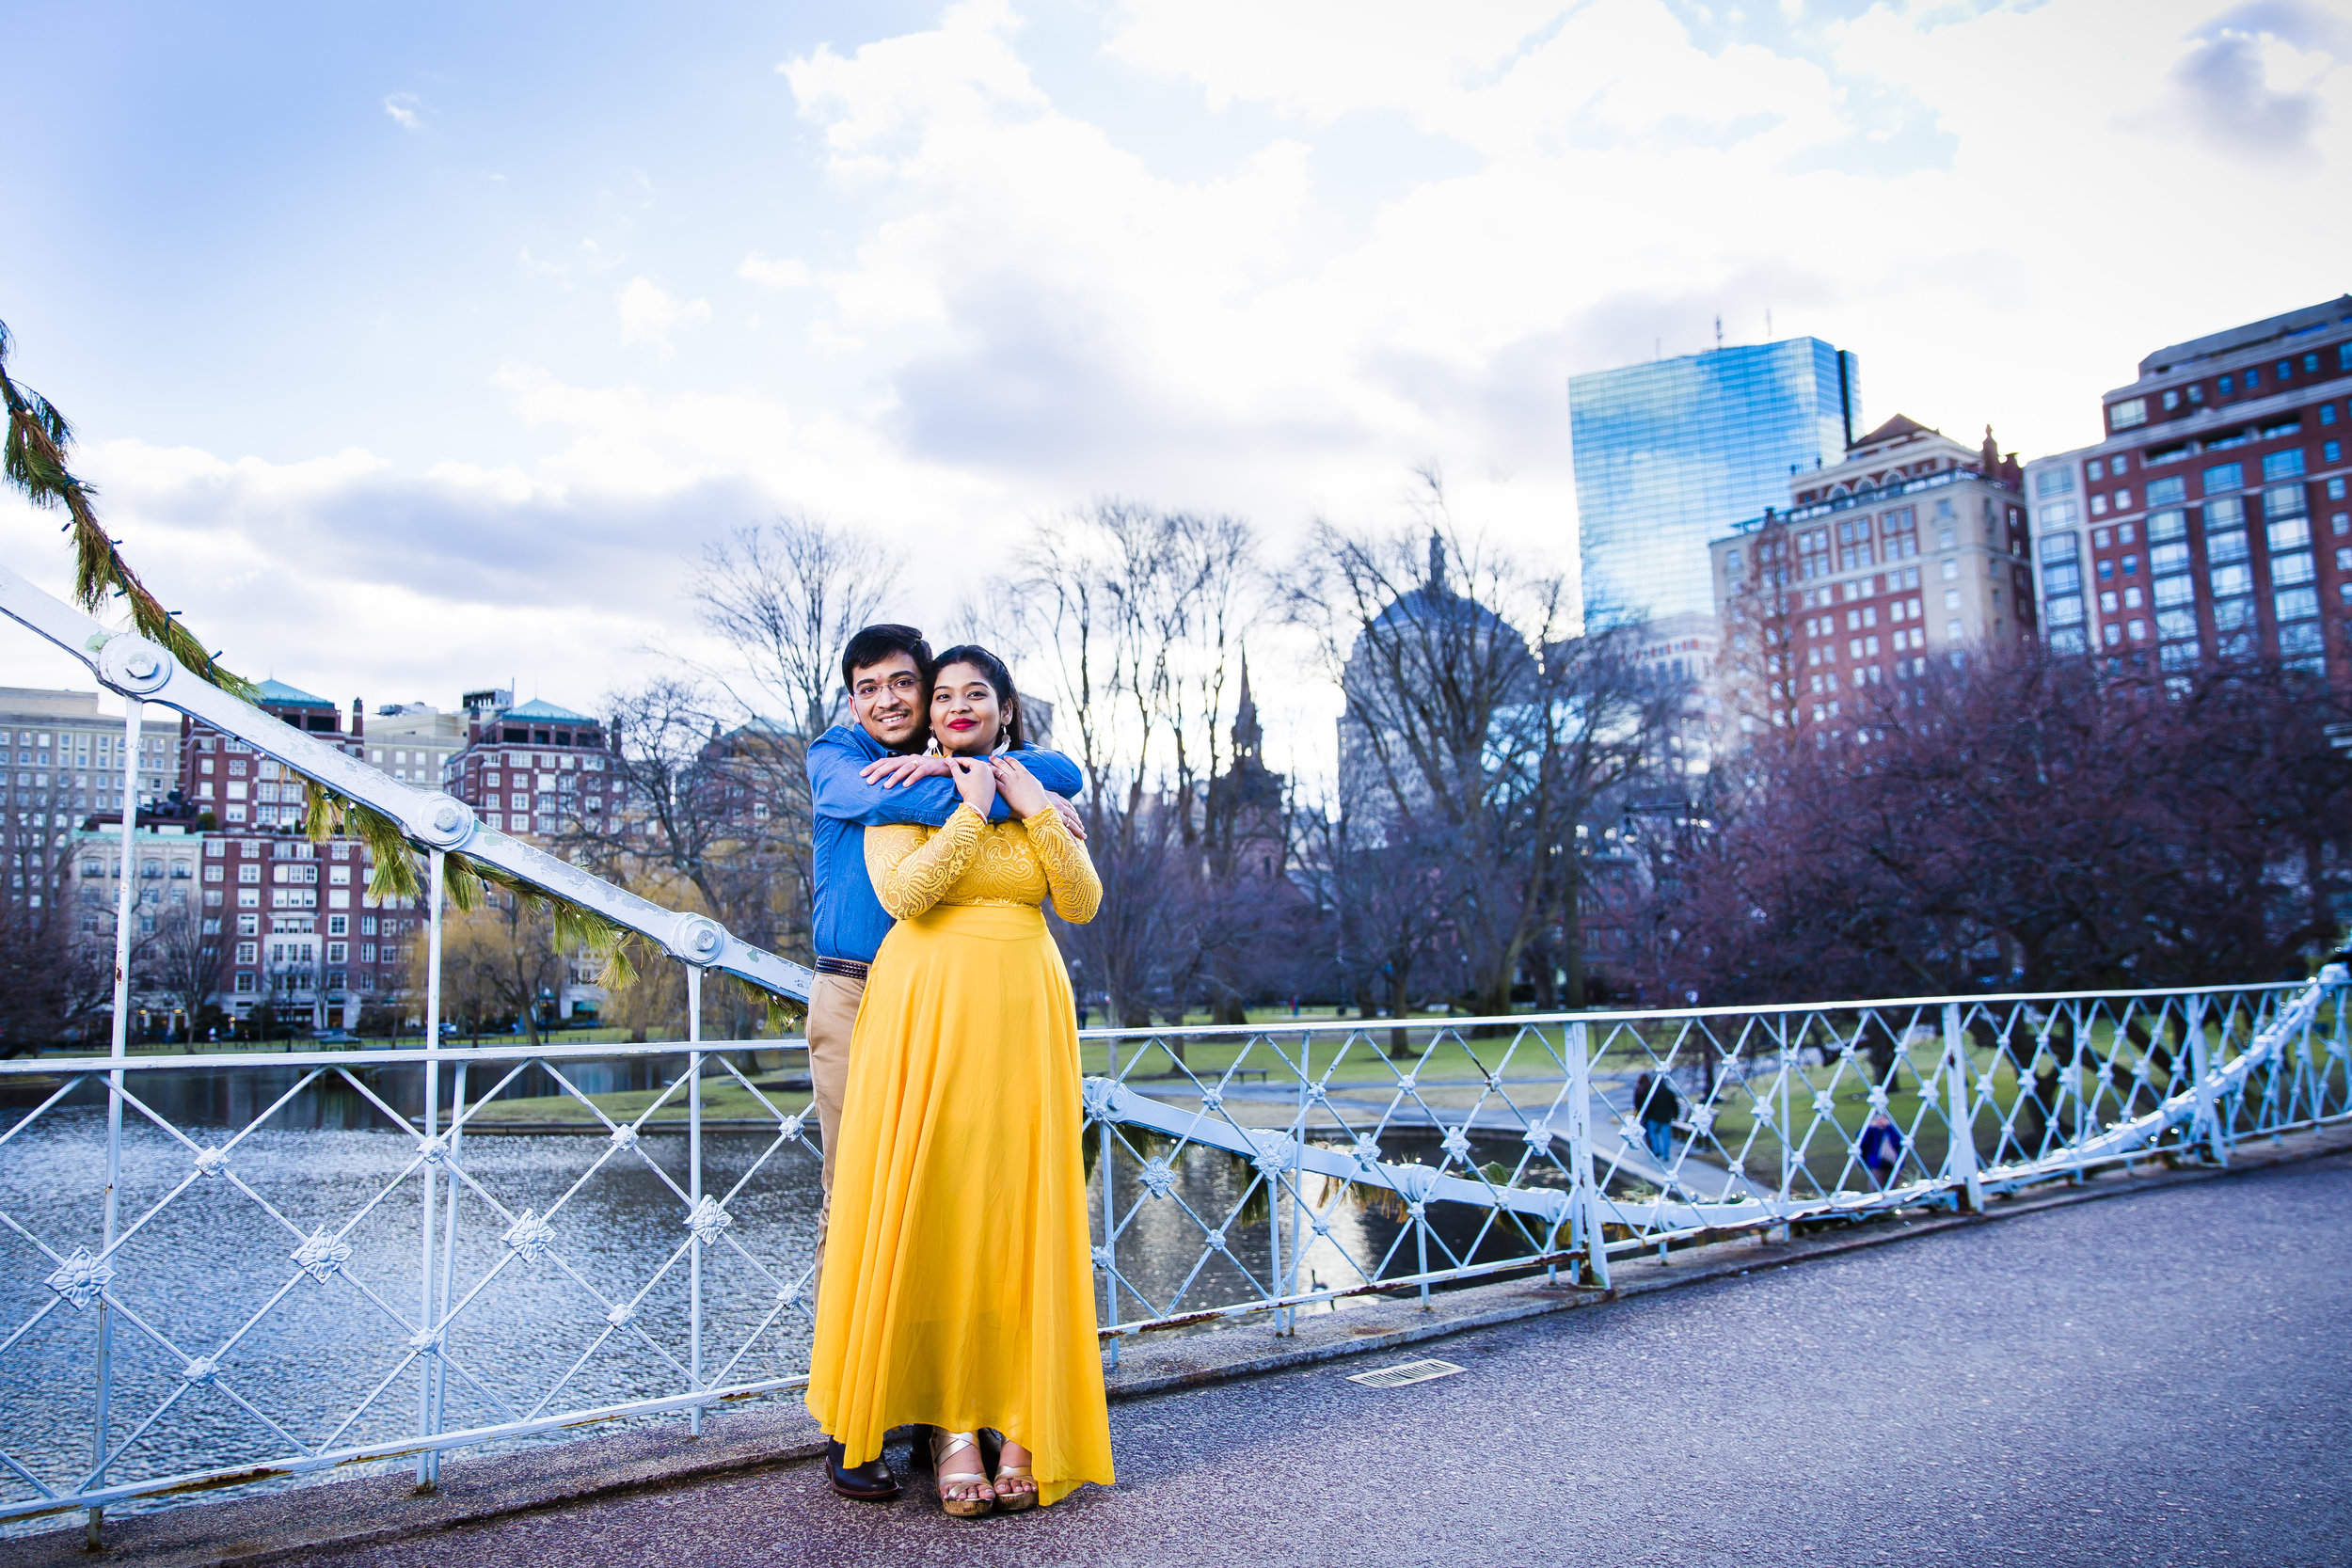 314A1024 Giovanni The Photographer Boston Engagment Photography Waterfront - Christopher Columbus Park - Public GardenPhotography School.jpg